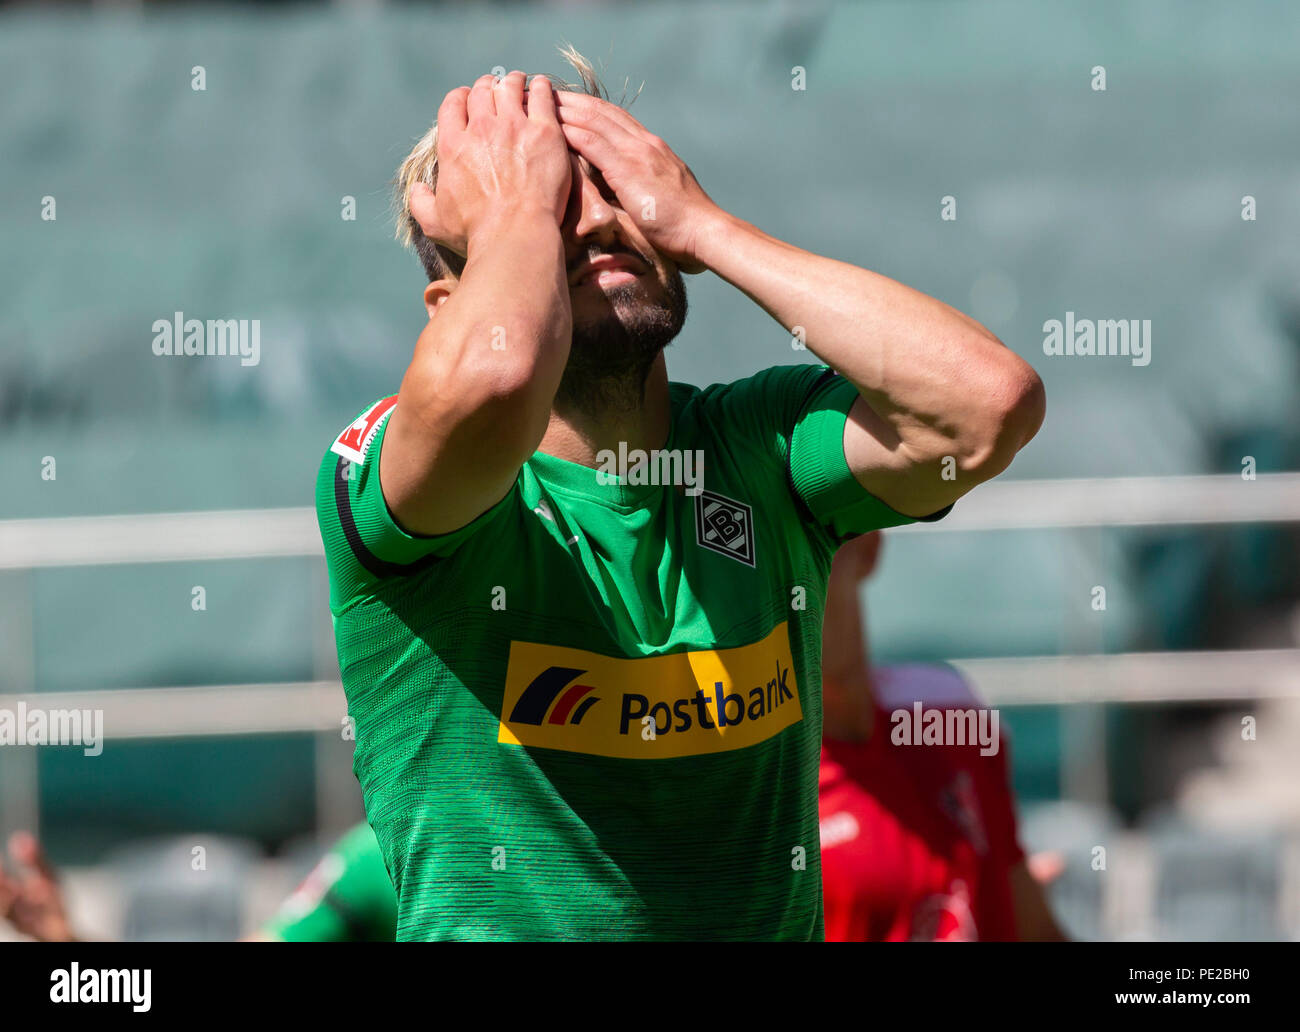 Moenchengladbach, Germany August 12 2018, friendly match, Borussia Moenchengladbach vs FC Wegberg-Beeck: Josip Drmic (BMG) niedergeschlagen.                Credit: Juergen Schwarz/Alamy Live News - Stock Image